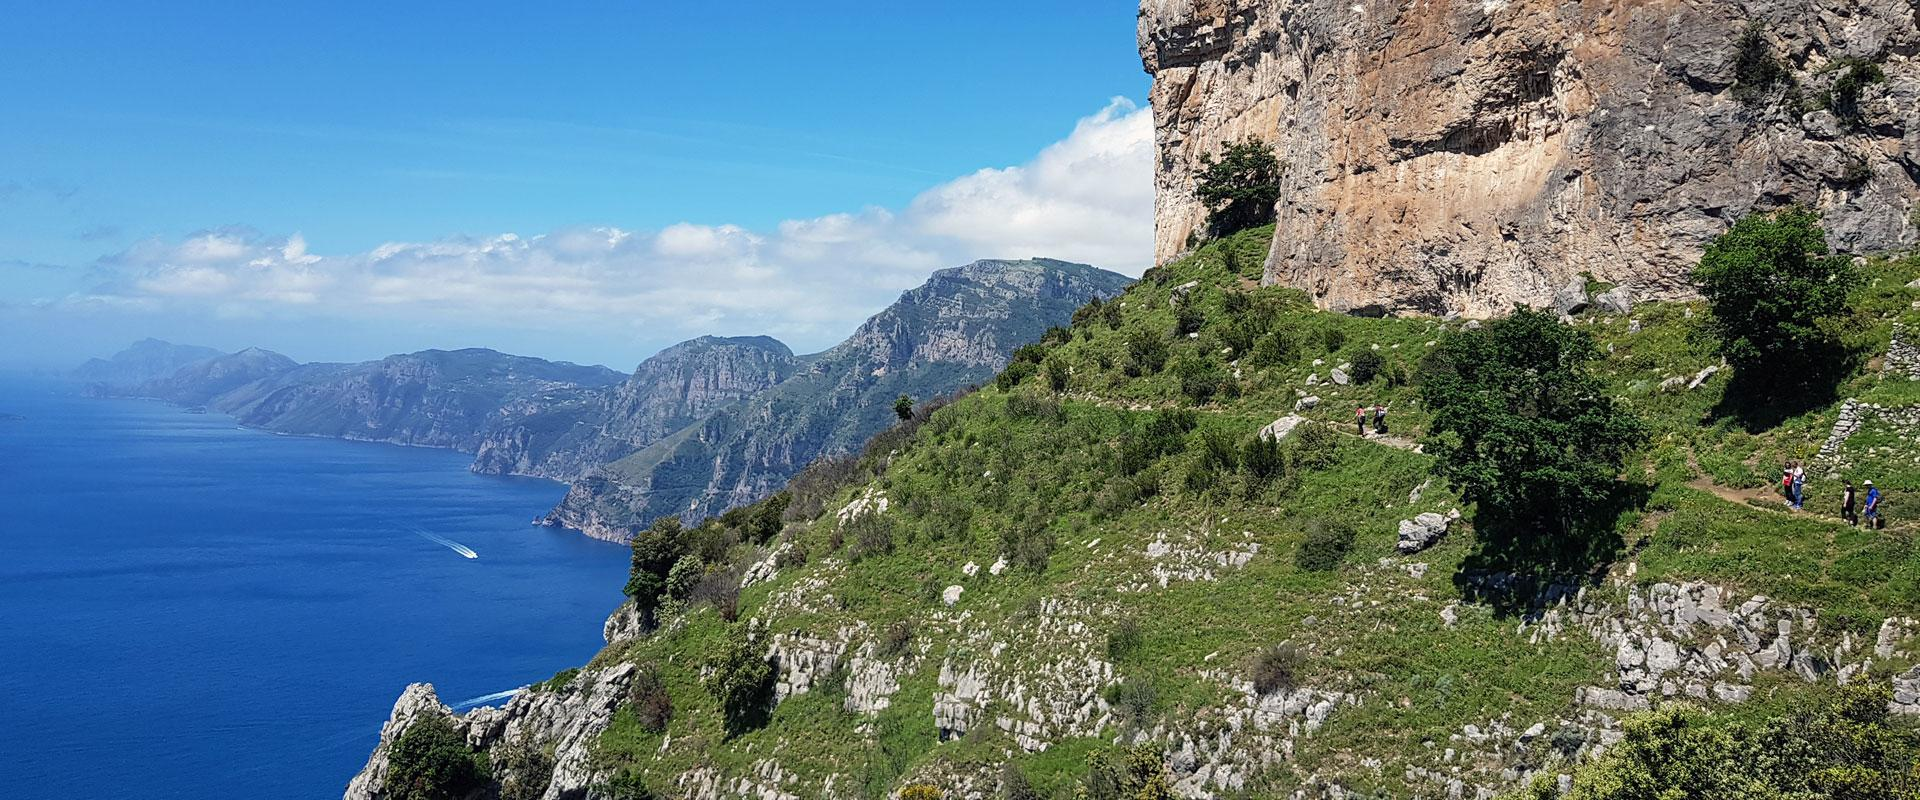 Amalfi Coast & Capri Hiking